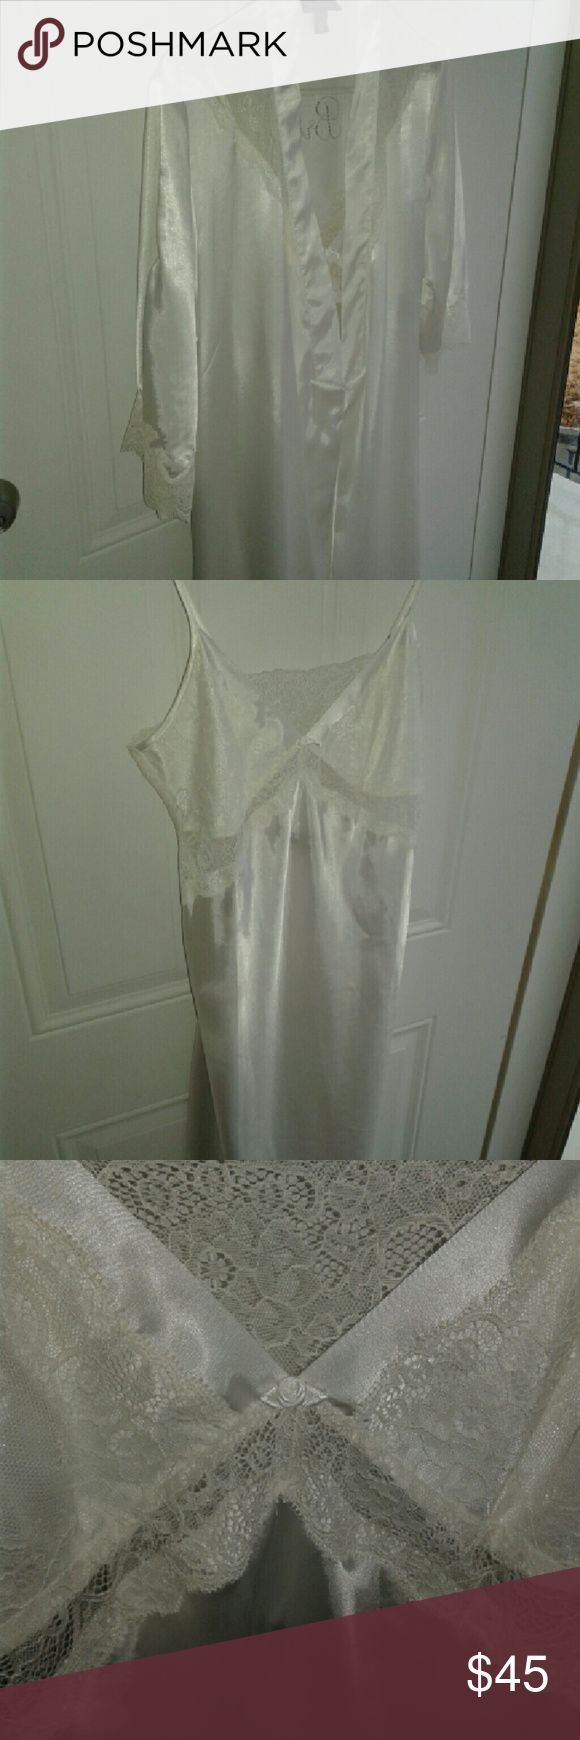 Long bridal robe and nightgown set This is brand new without tags as I intended to wear it but my honeymoon but it was too warm in hawaii Jones New York Intimates & Sleepwear Robes